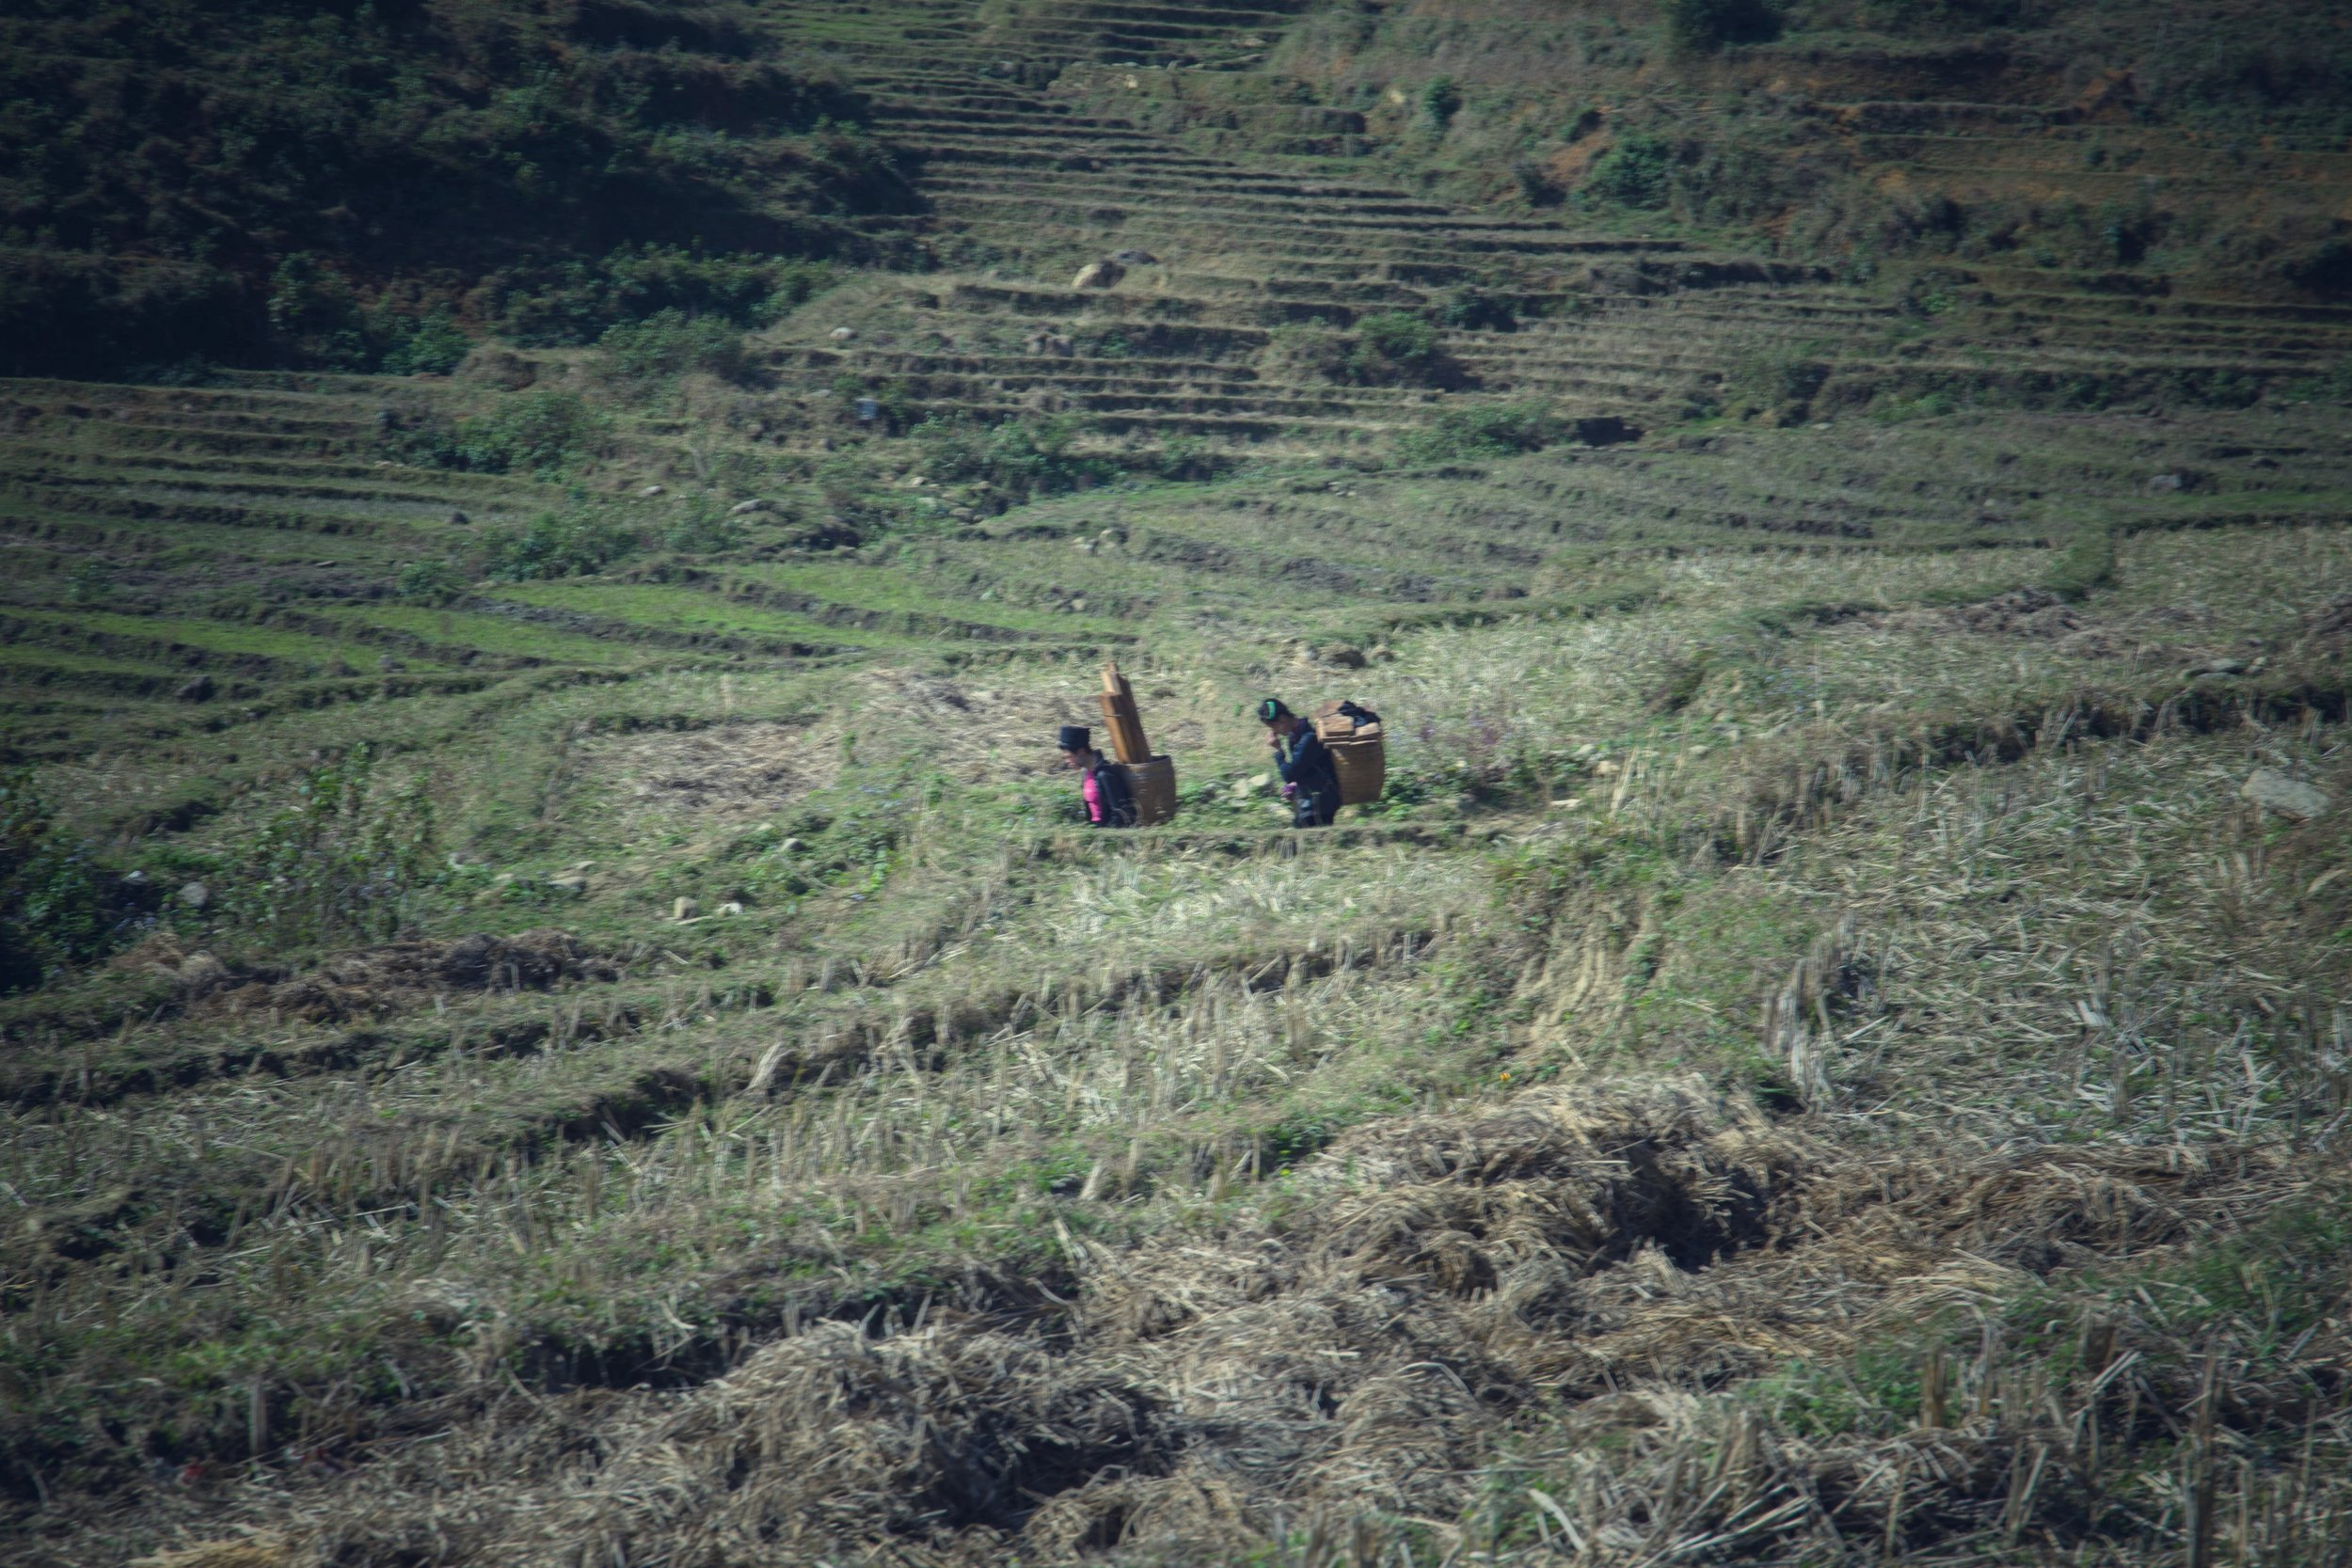 Rice field workers in Sapa, Vietnam. Now these people know how to work hard.